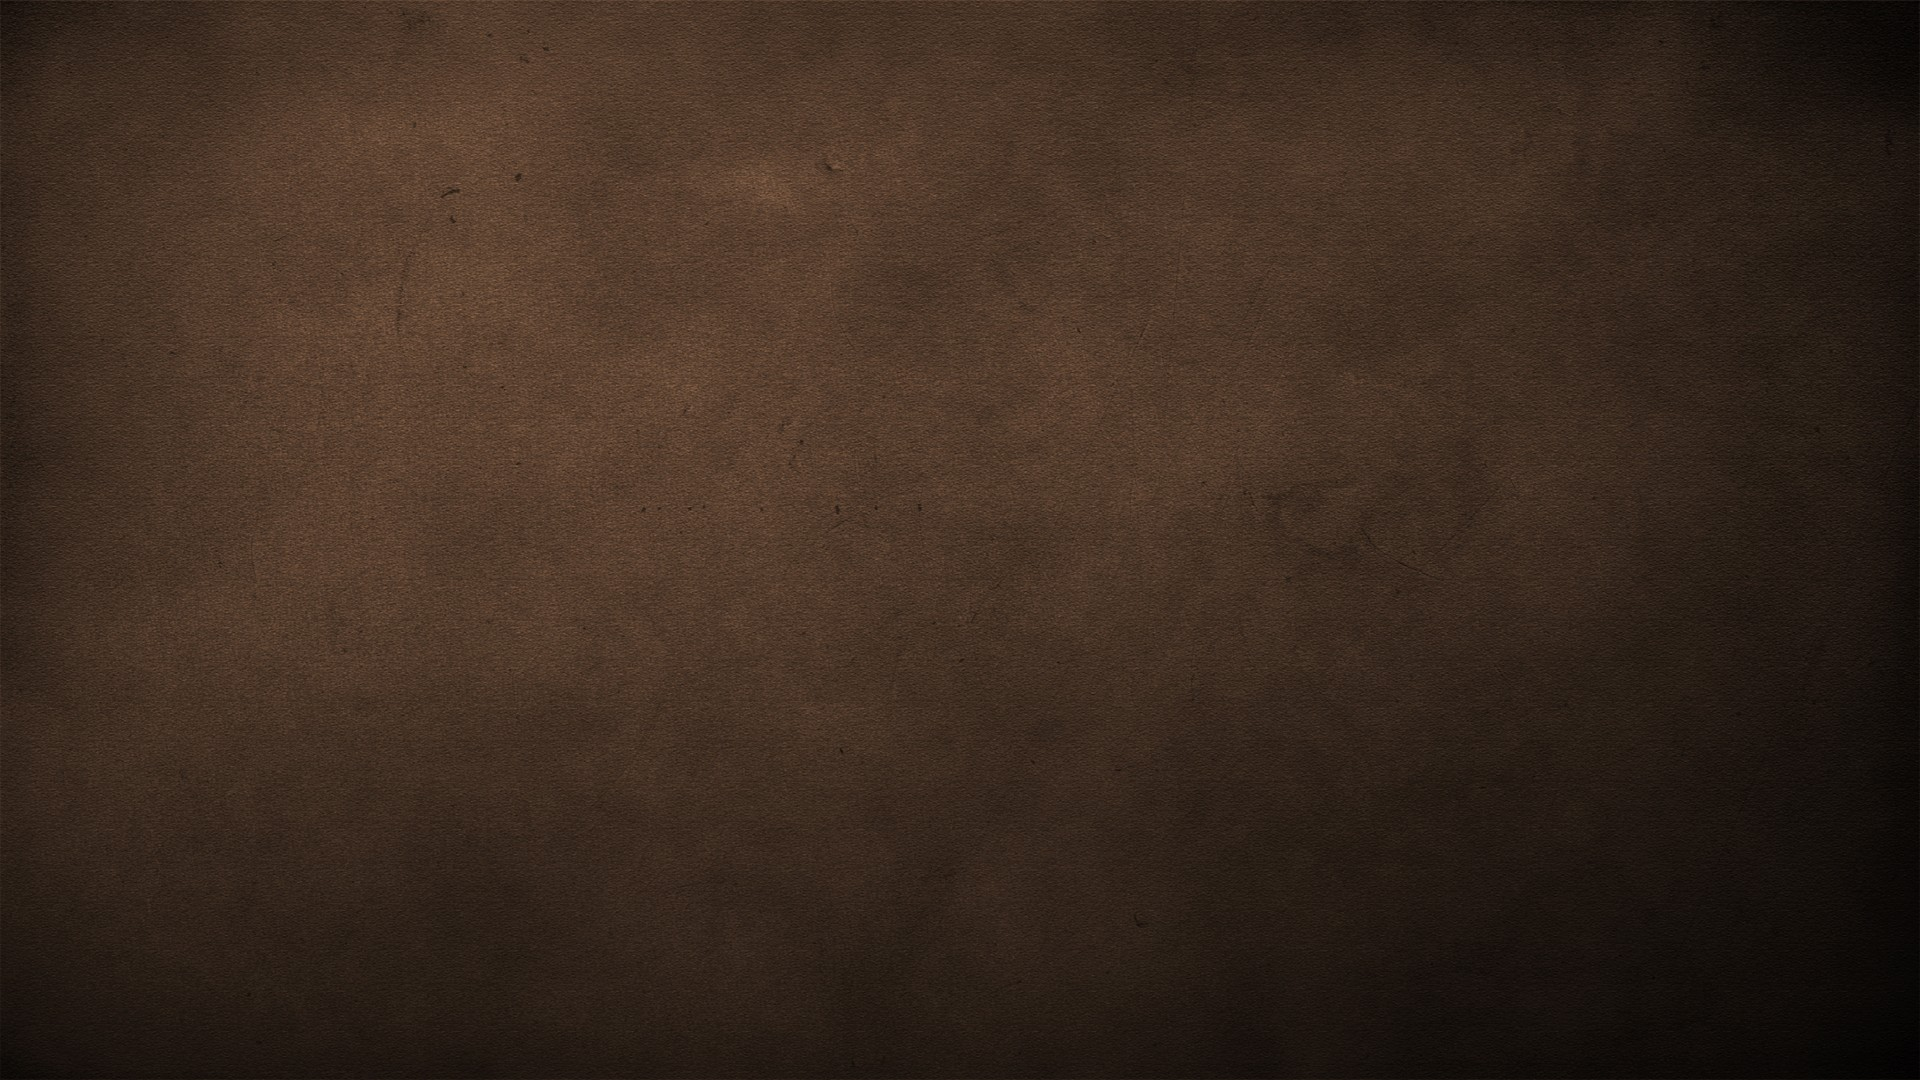 Awesome Brown Background